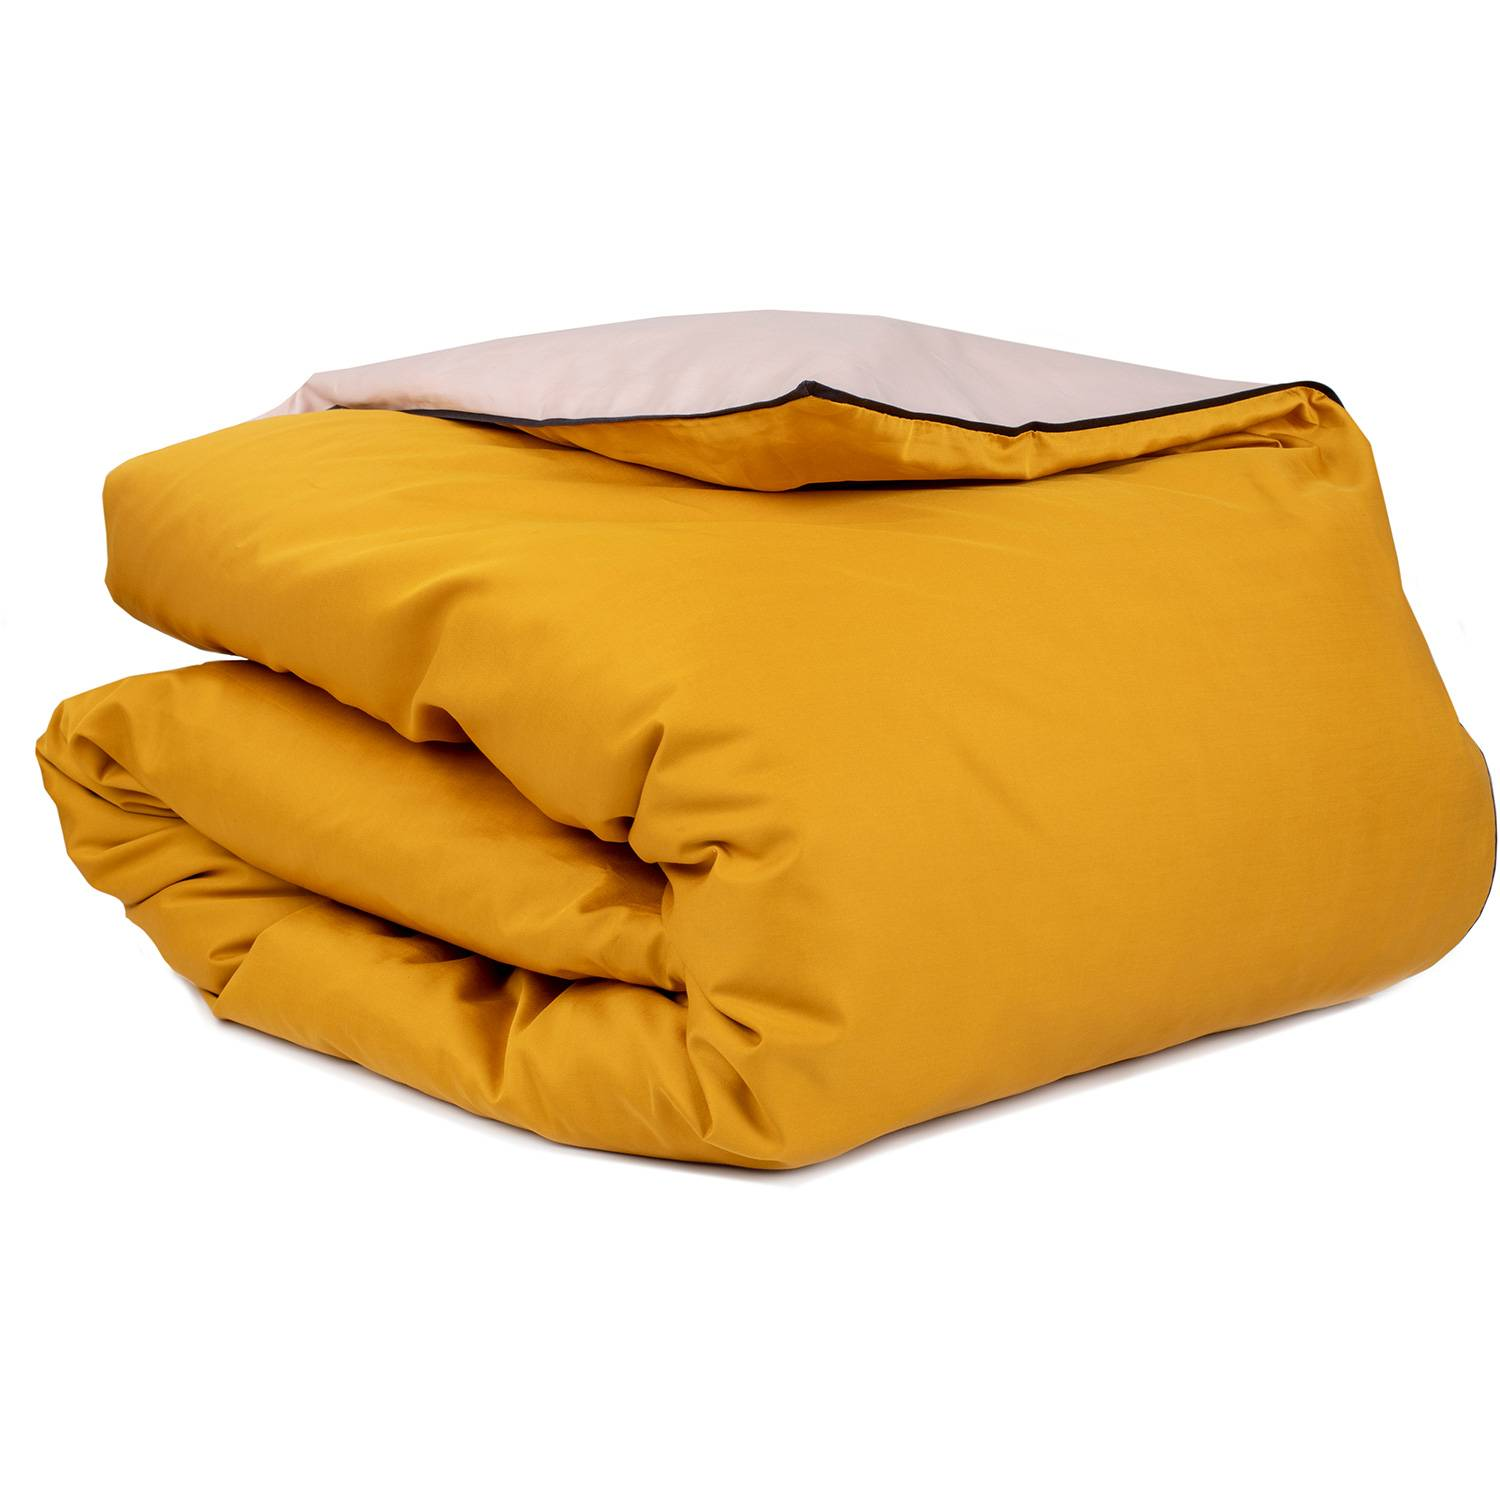 Mille Notti-Duetto Duvet Cover 150x210cm, Yellow/Light Pink